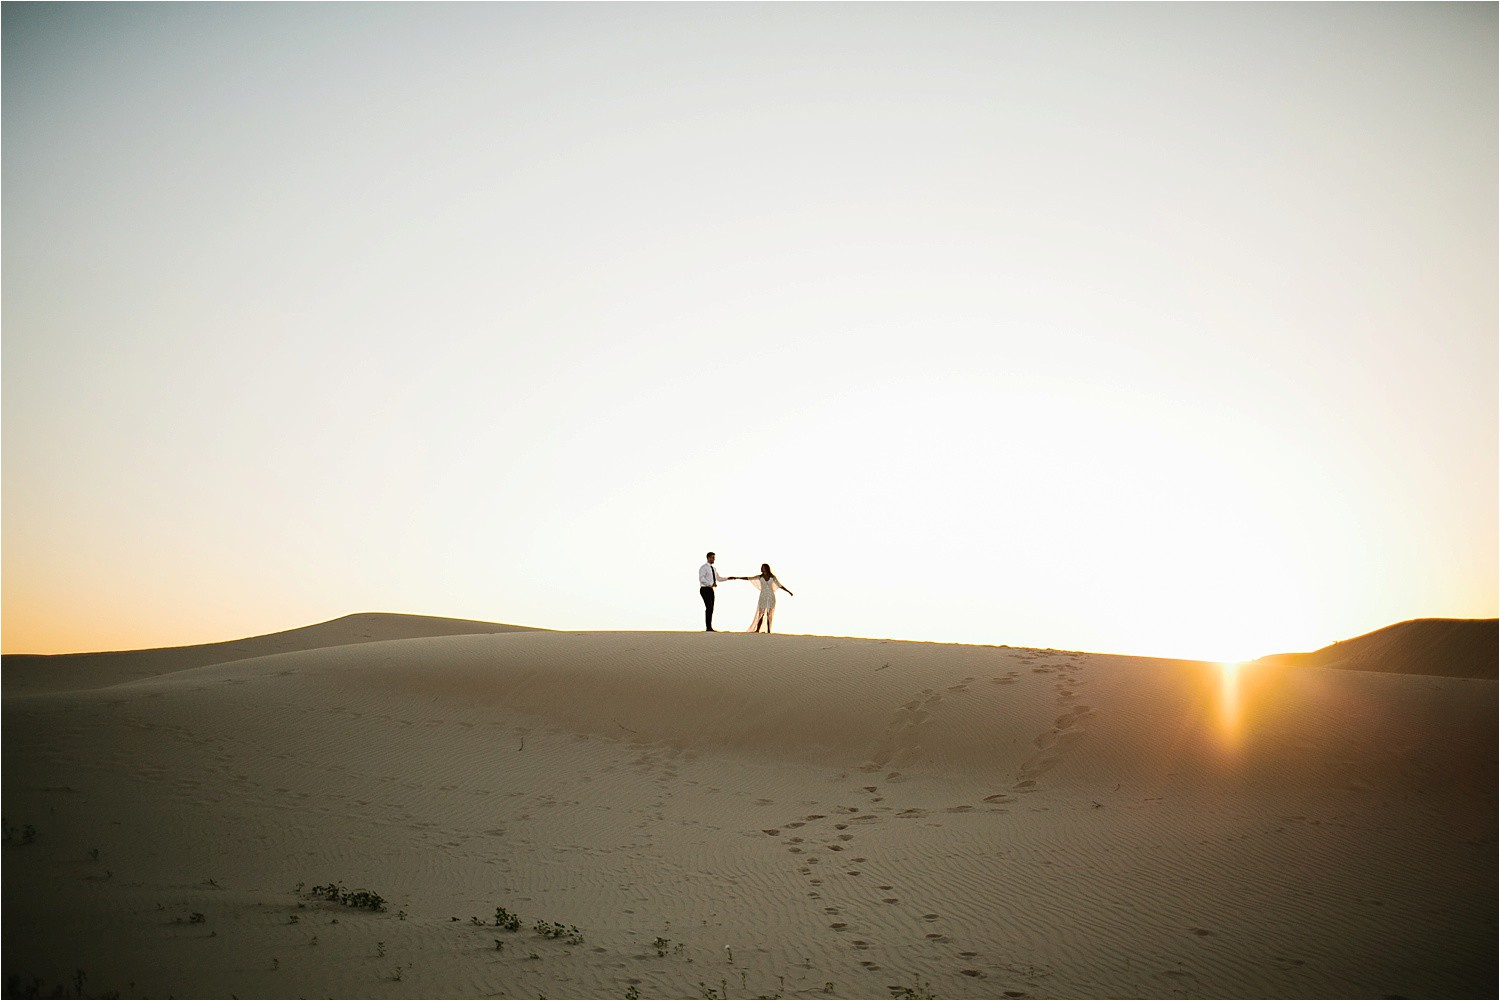 Lauren + Jacob __ a monahans sand dunes engagement session at sunrise by North Texas Wedding Photographer, Rachel Meagan Photography __ 11